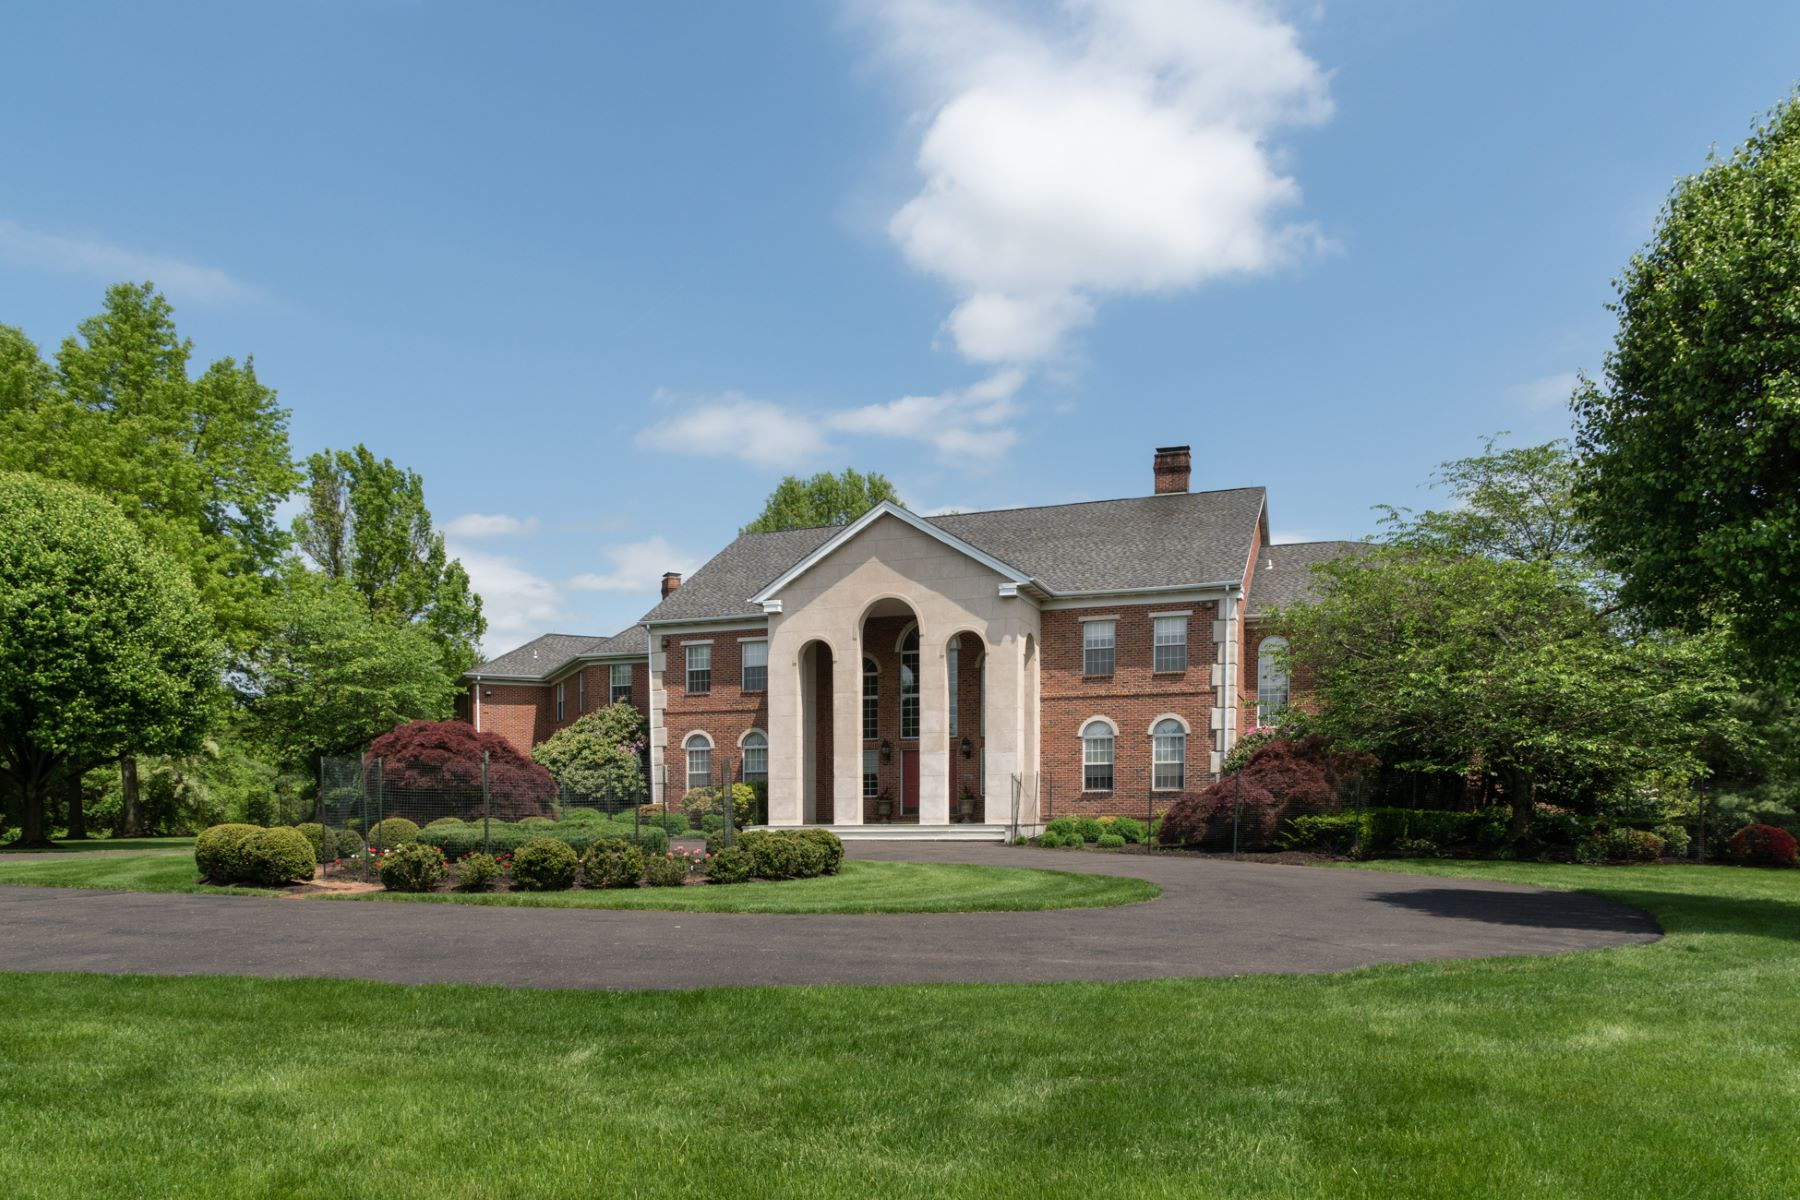 Property for Sale at Masterpiece of Custom Design On 10 Sprawling Acres 7 Woodland Road, Newtown, Pennsylvania 18940 United States